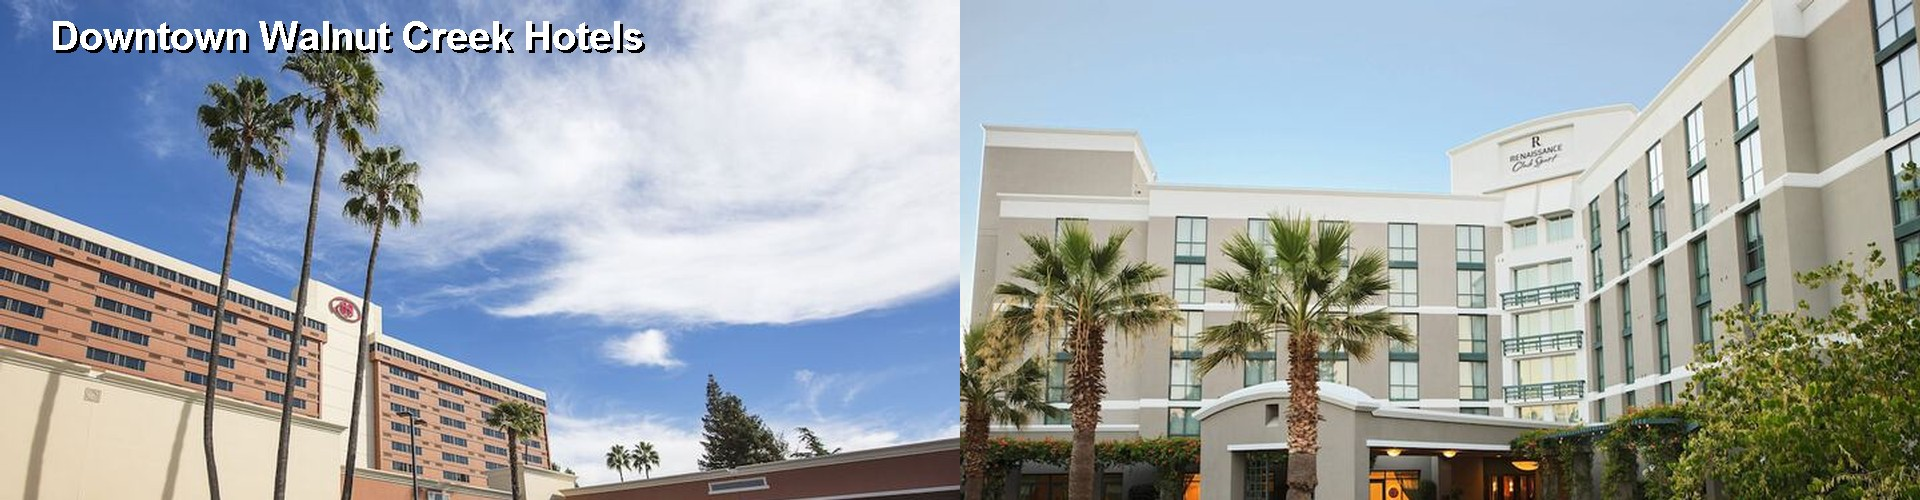 5 Best Hotels near Downtown Walnut Creek